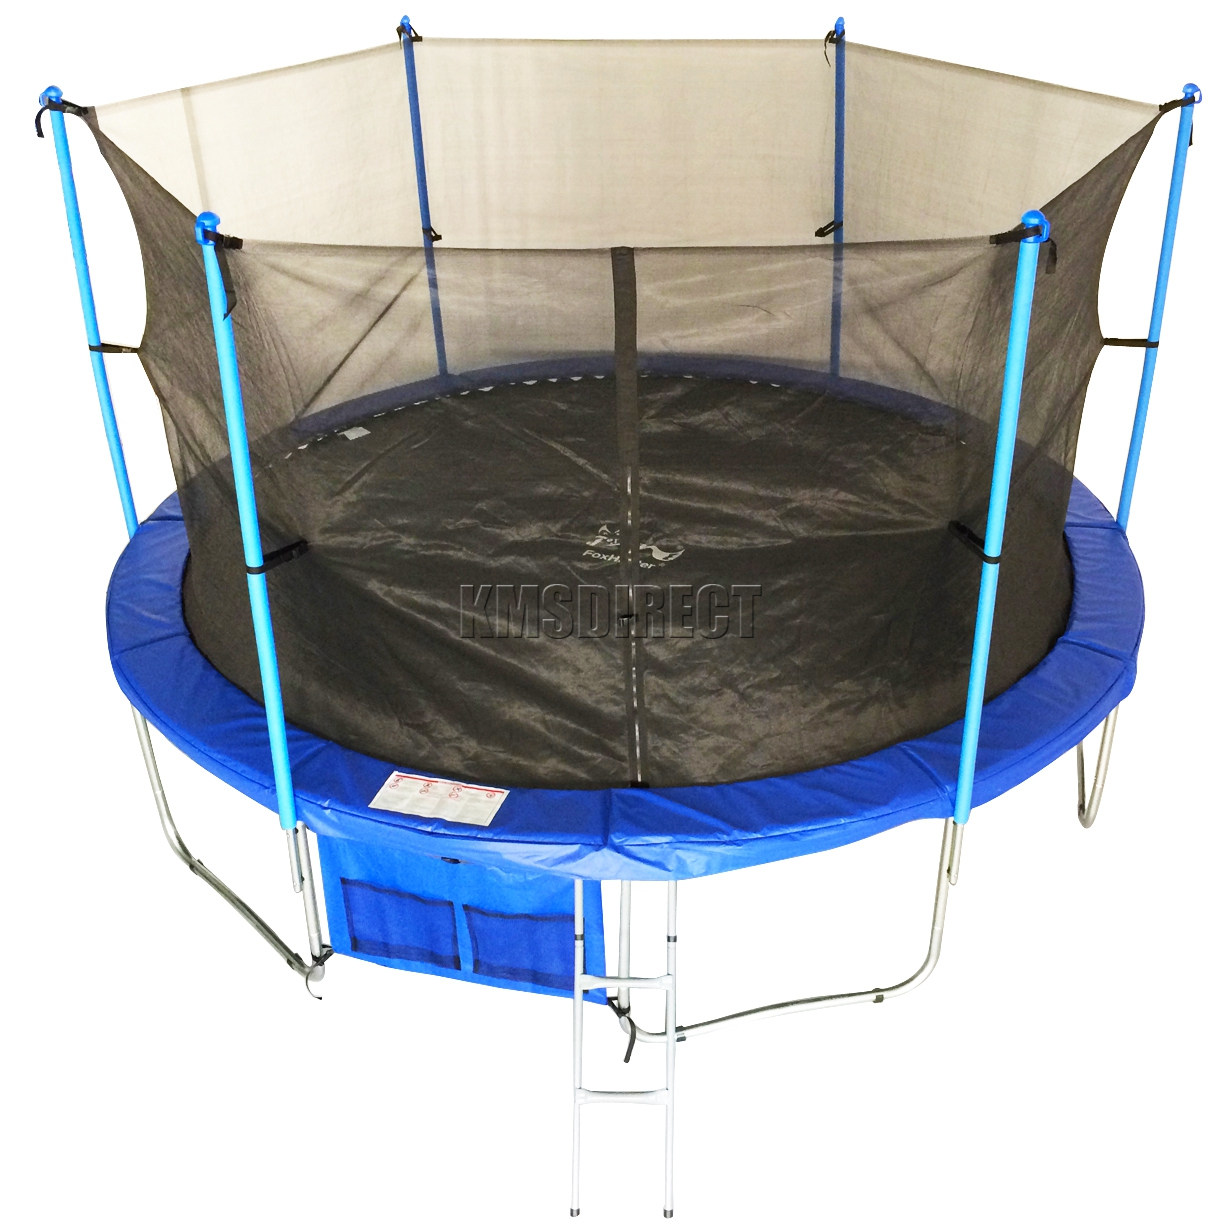 FoxHunter 14ft Trampoline With Ladder Net Enclosure Safety